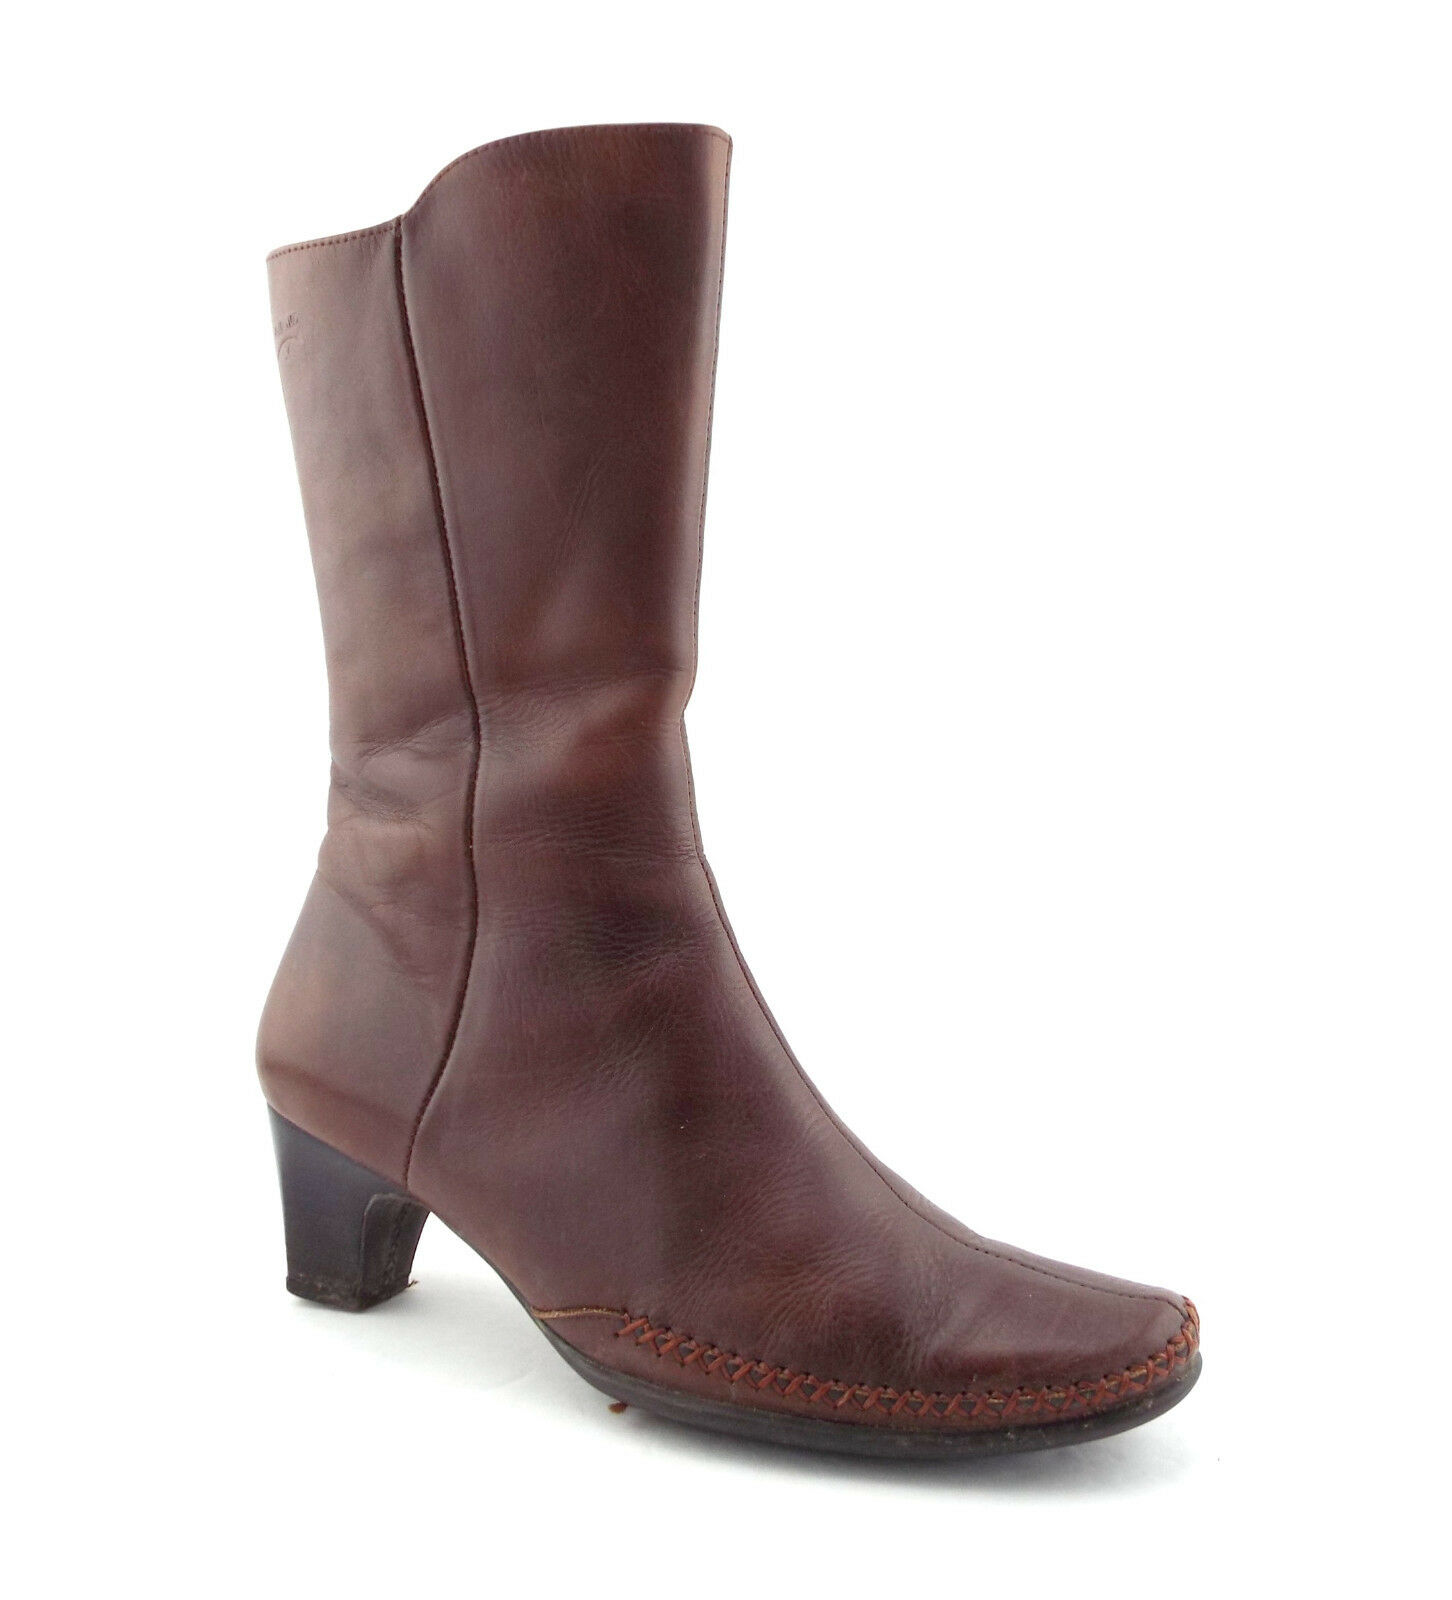 PIKOLINOS Size Zip 7.5 Brown Leather High Ankle Zip Size Up Boots 38 57b300